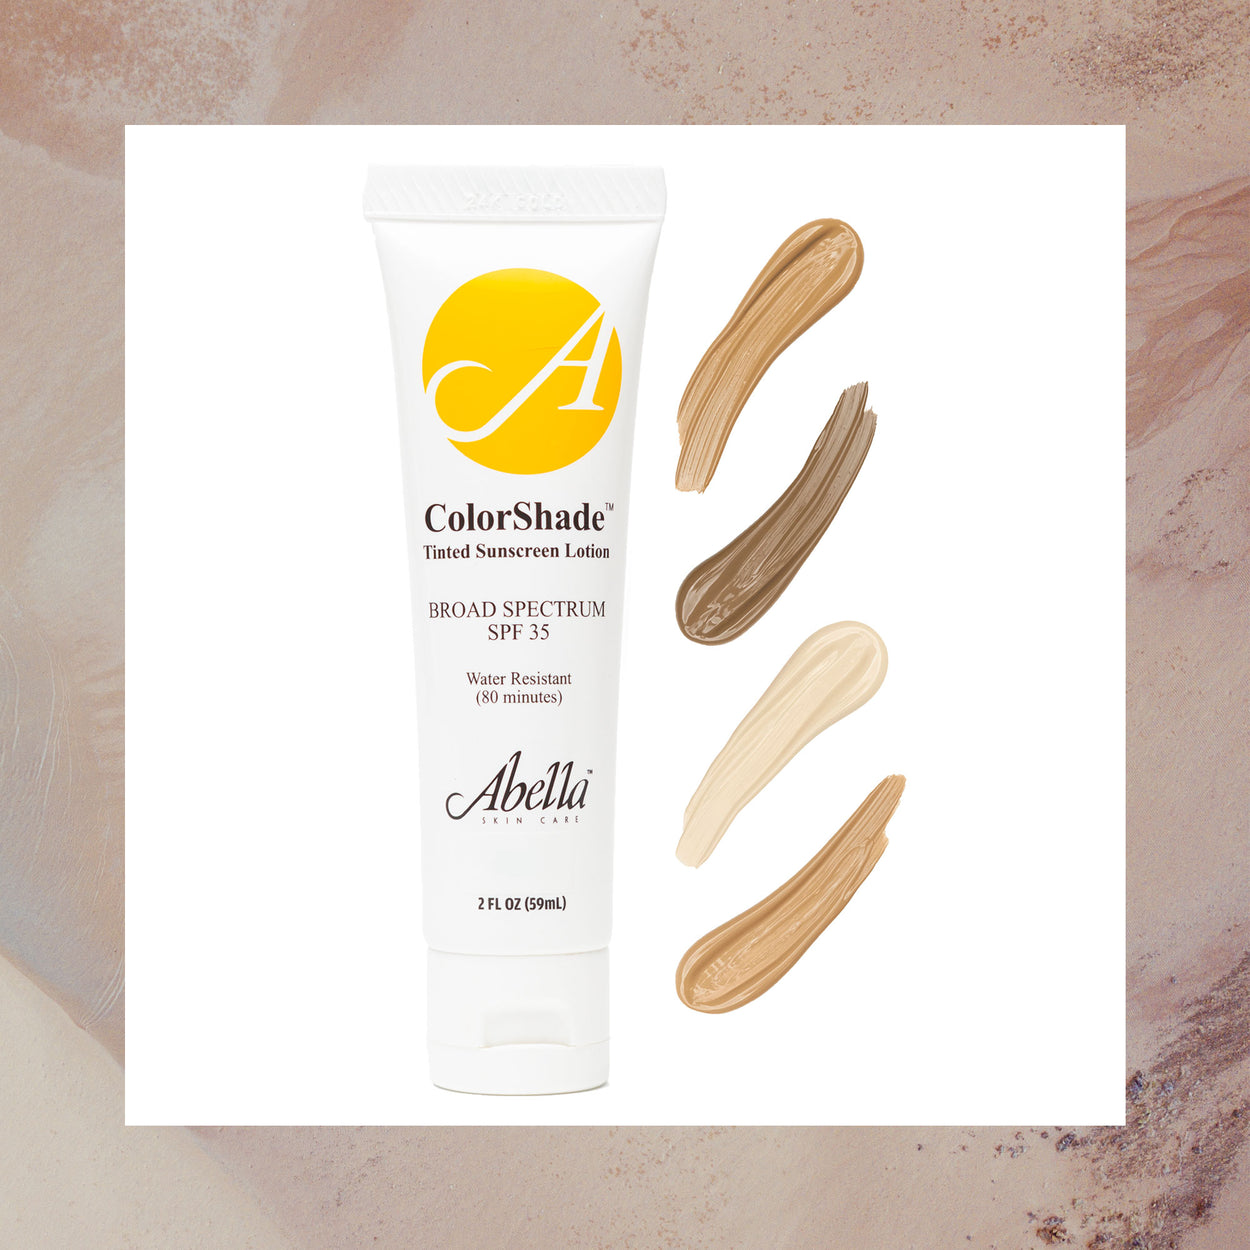 ColorShade SPF 35